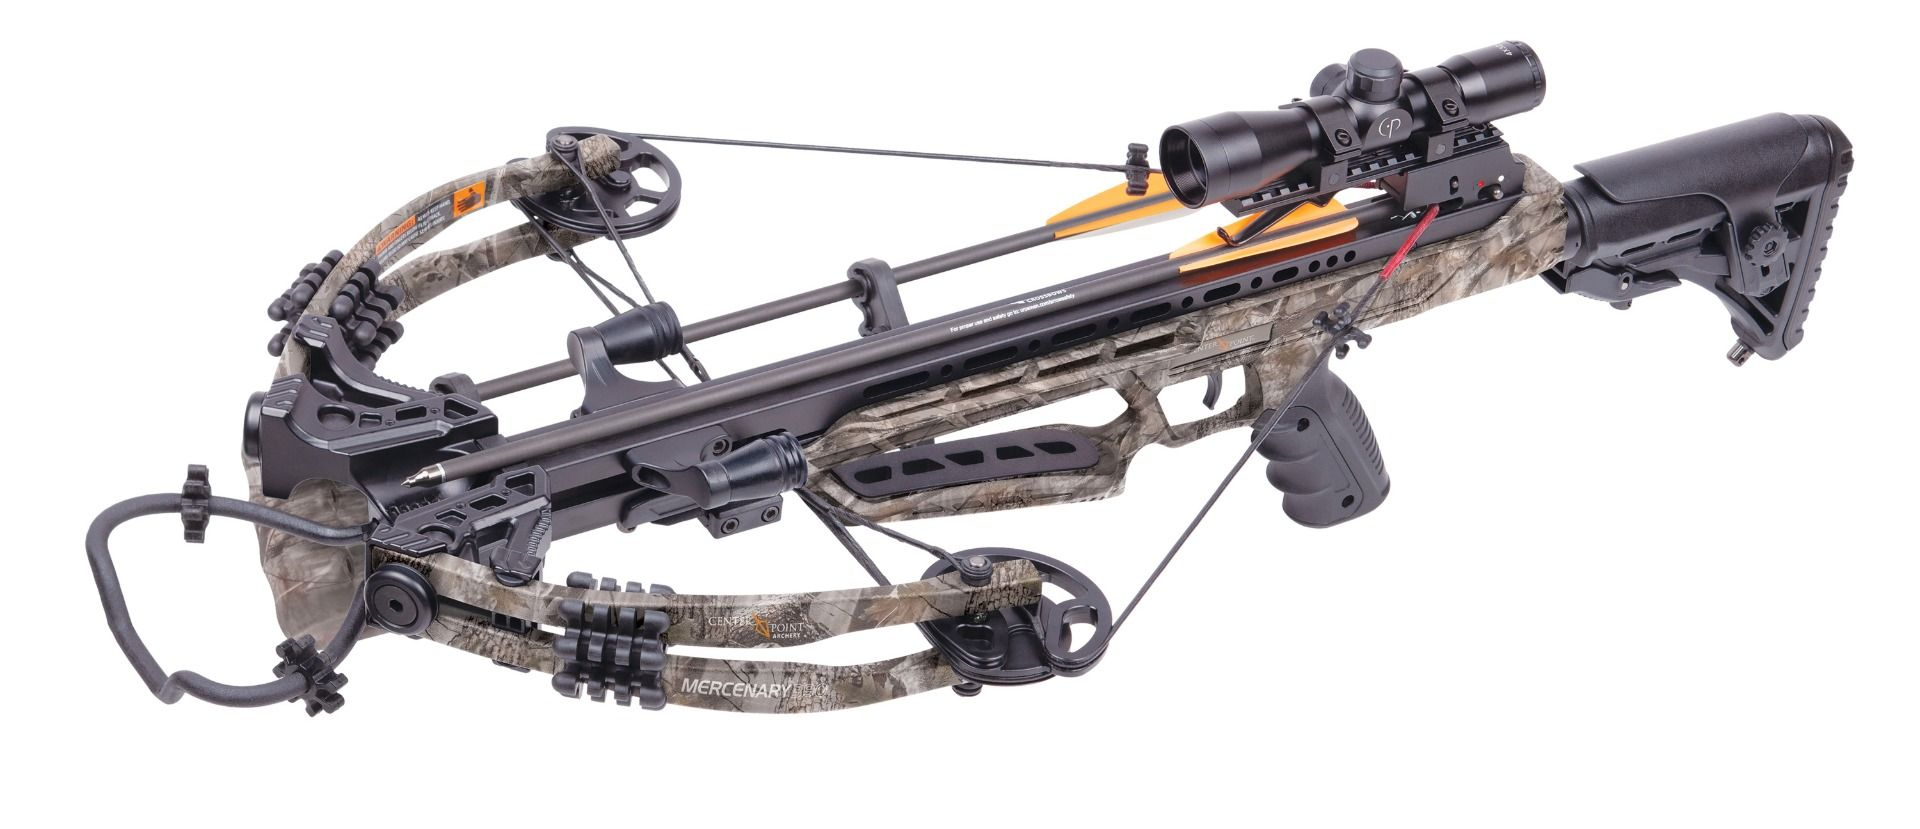 CenterPoint Mercenary 390 Crossbow Package for sale at Kiigns Hunting.